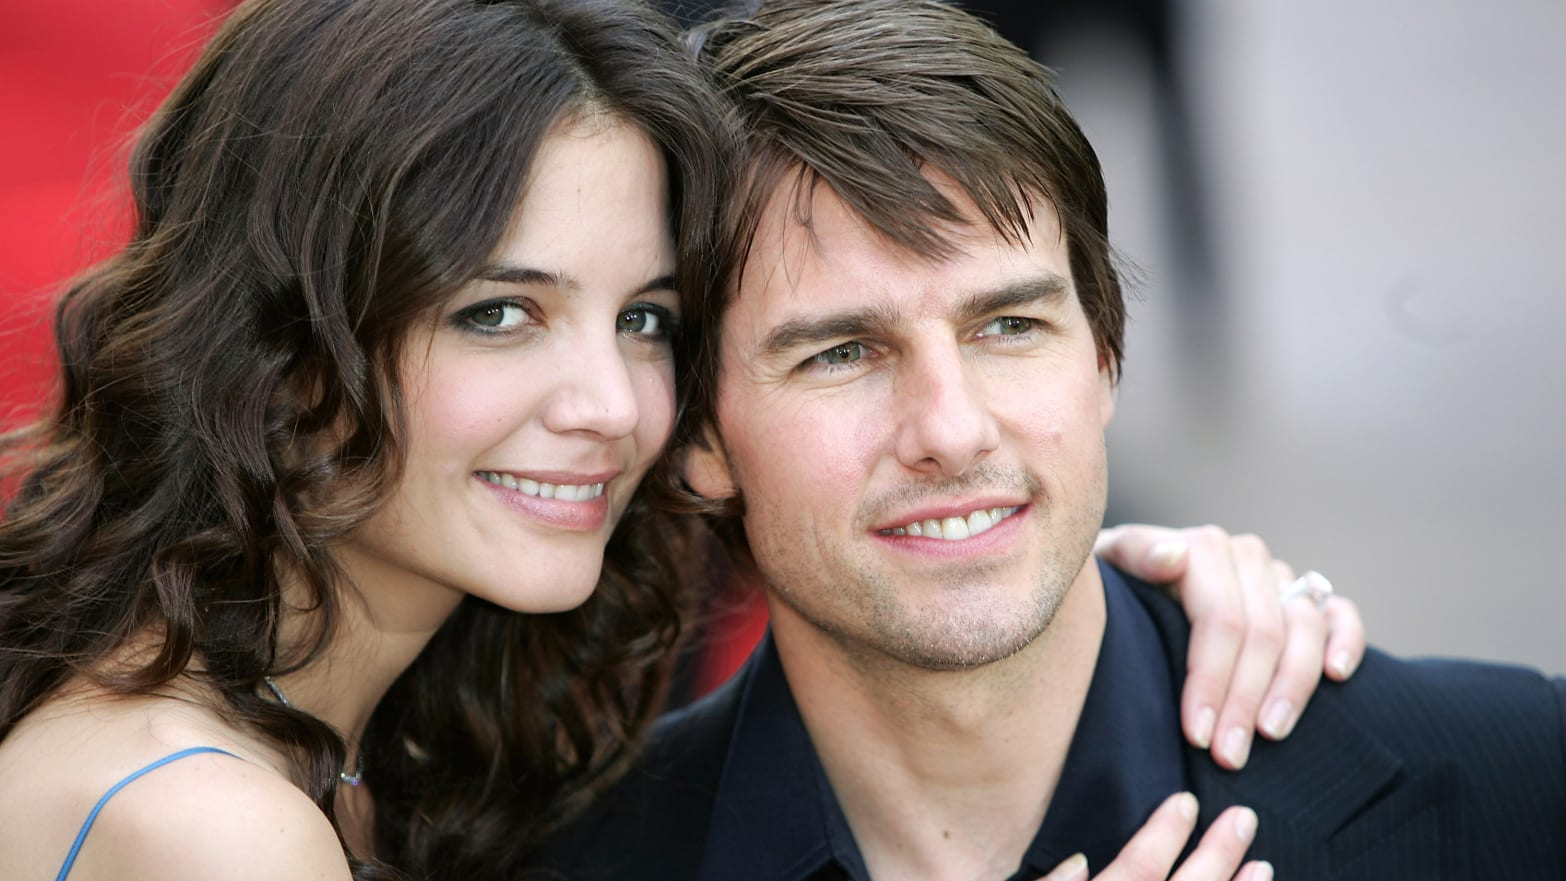 Tom cruise dating after divorce